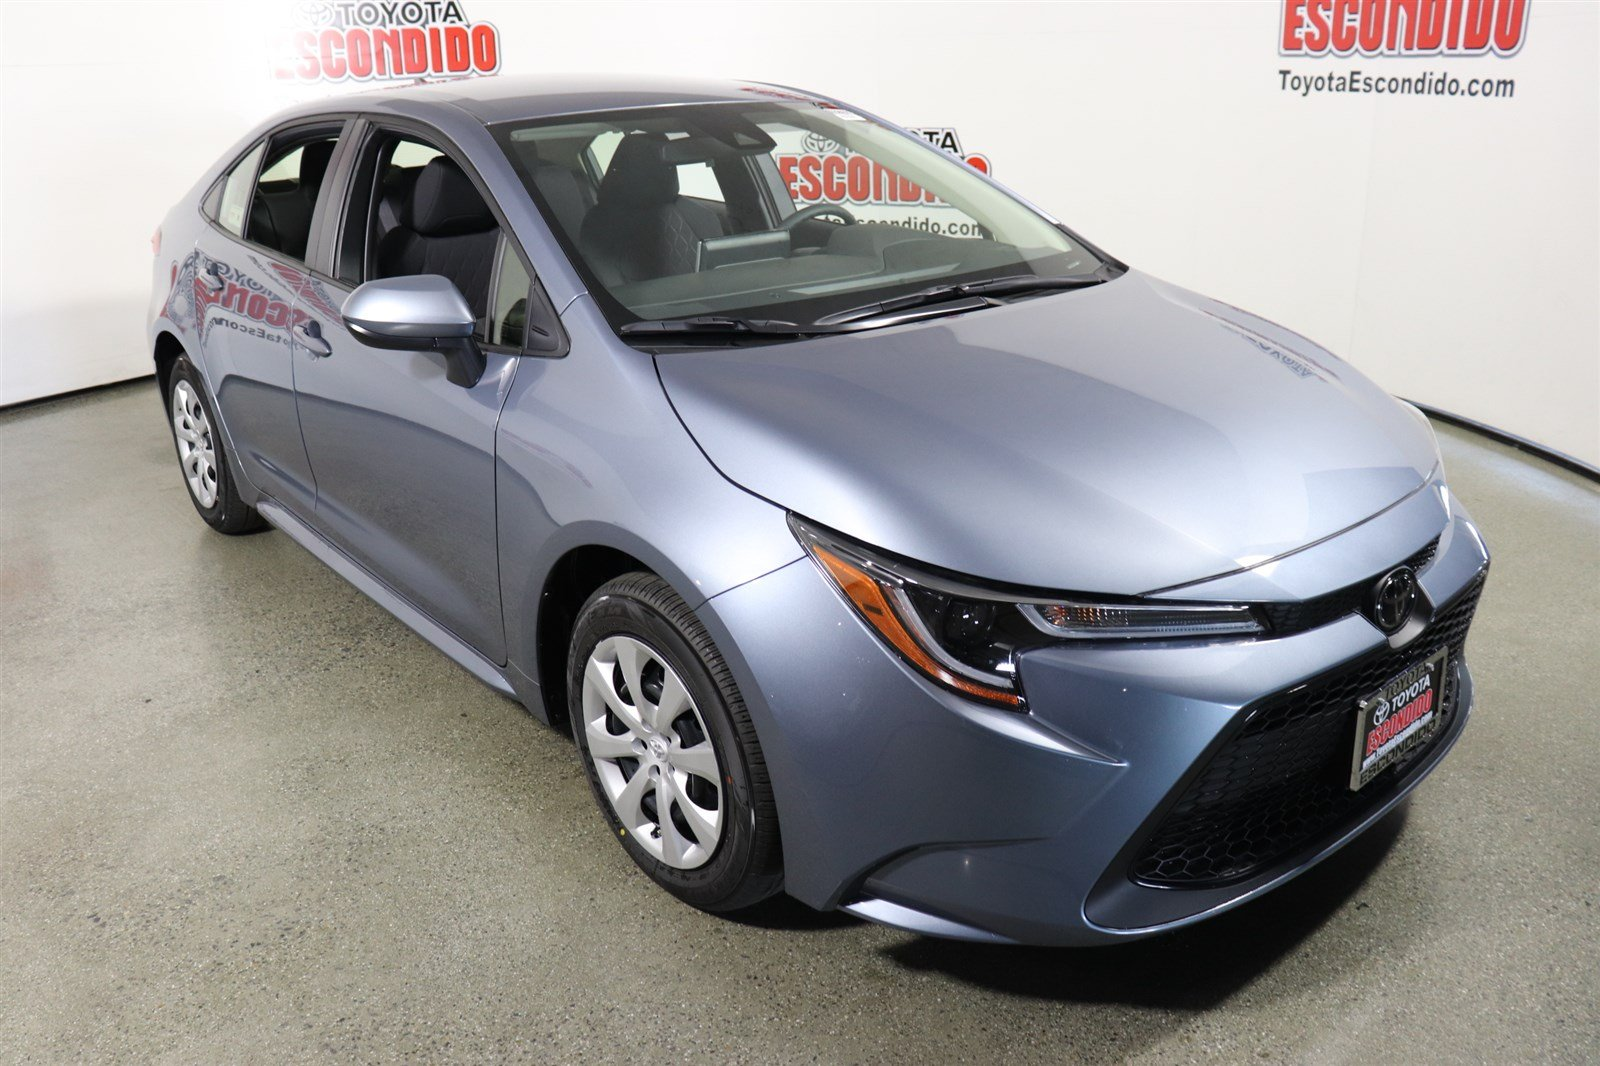 New 2020 Toyota Corolla Le 4dr Car In Escondido 1022763 Toyota